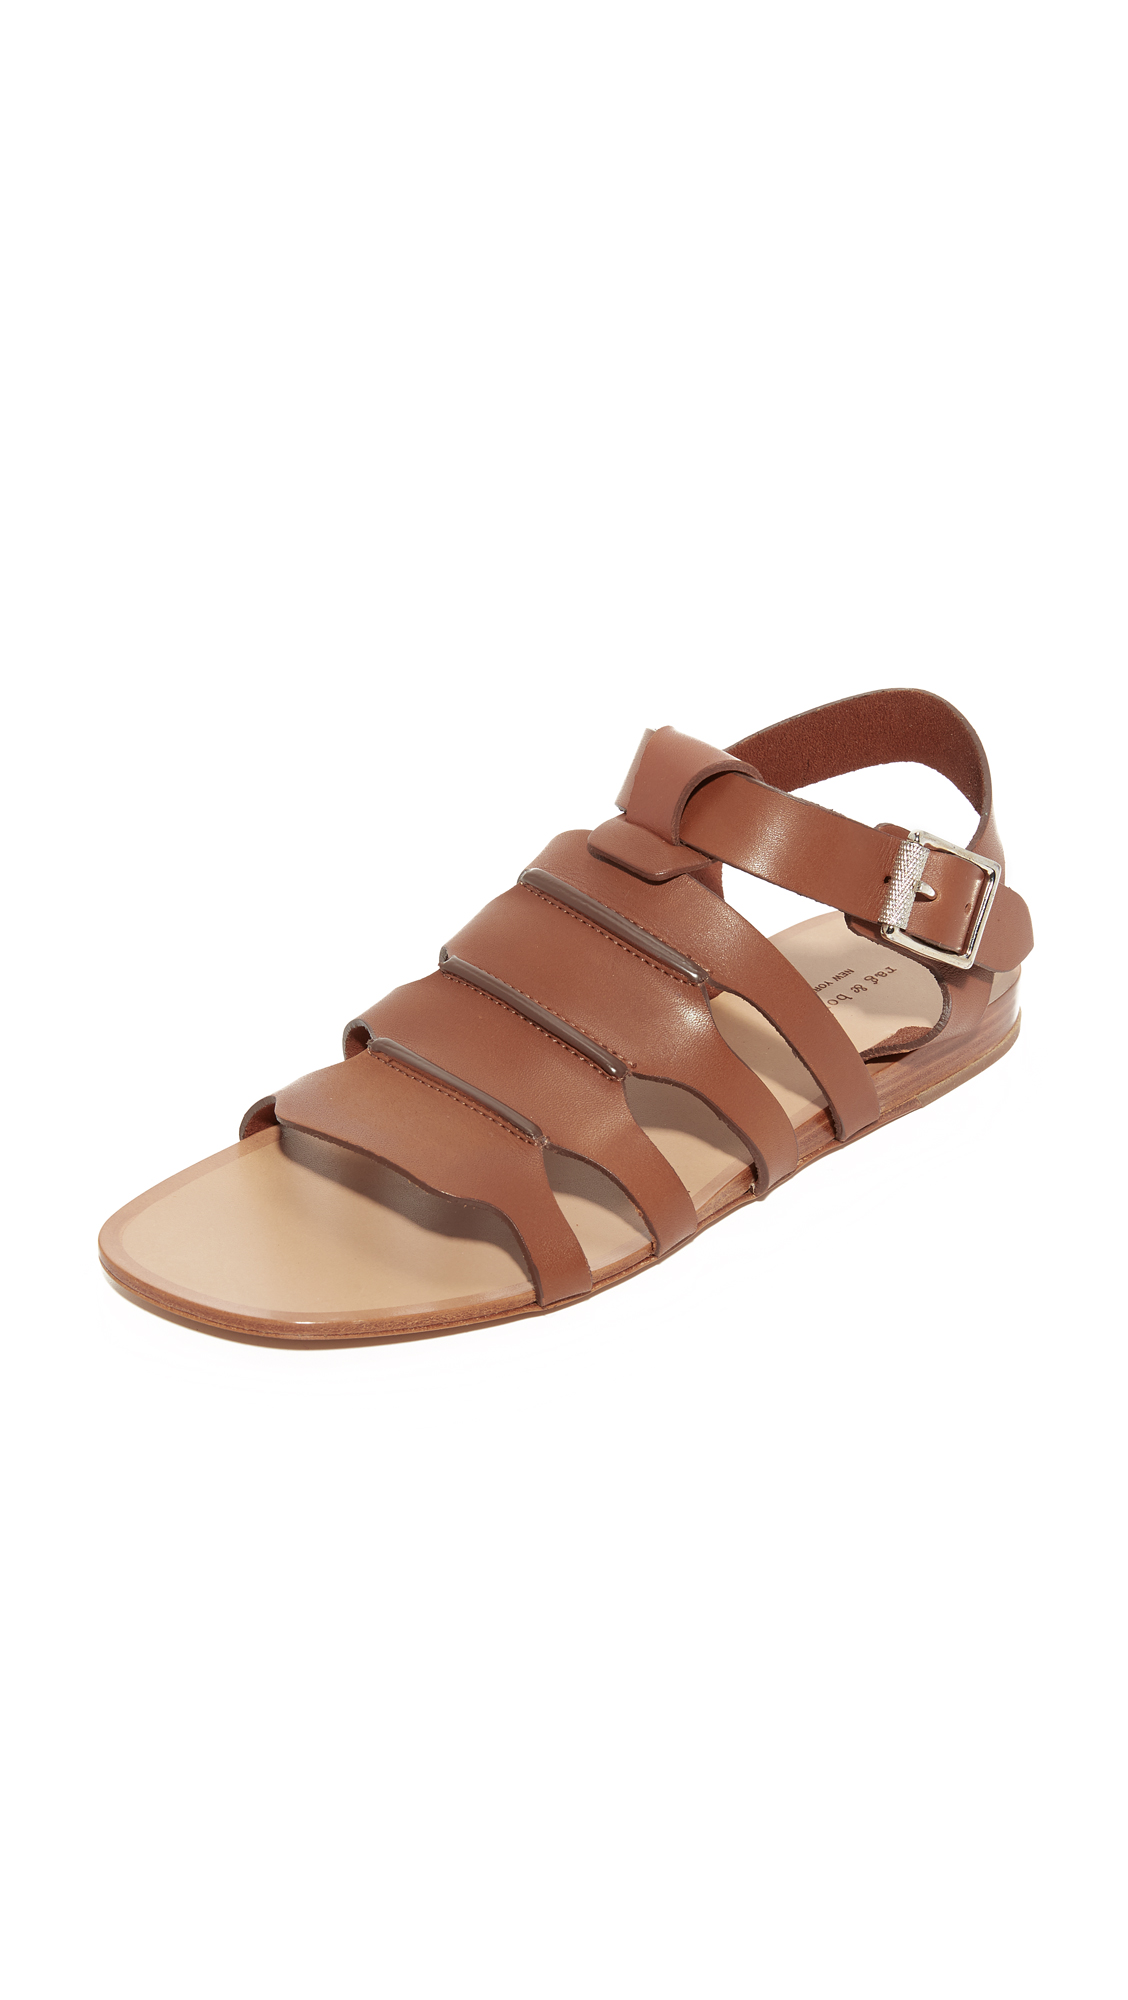 Rag & Bone Karli Sandals - Tan